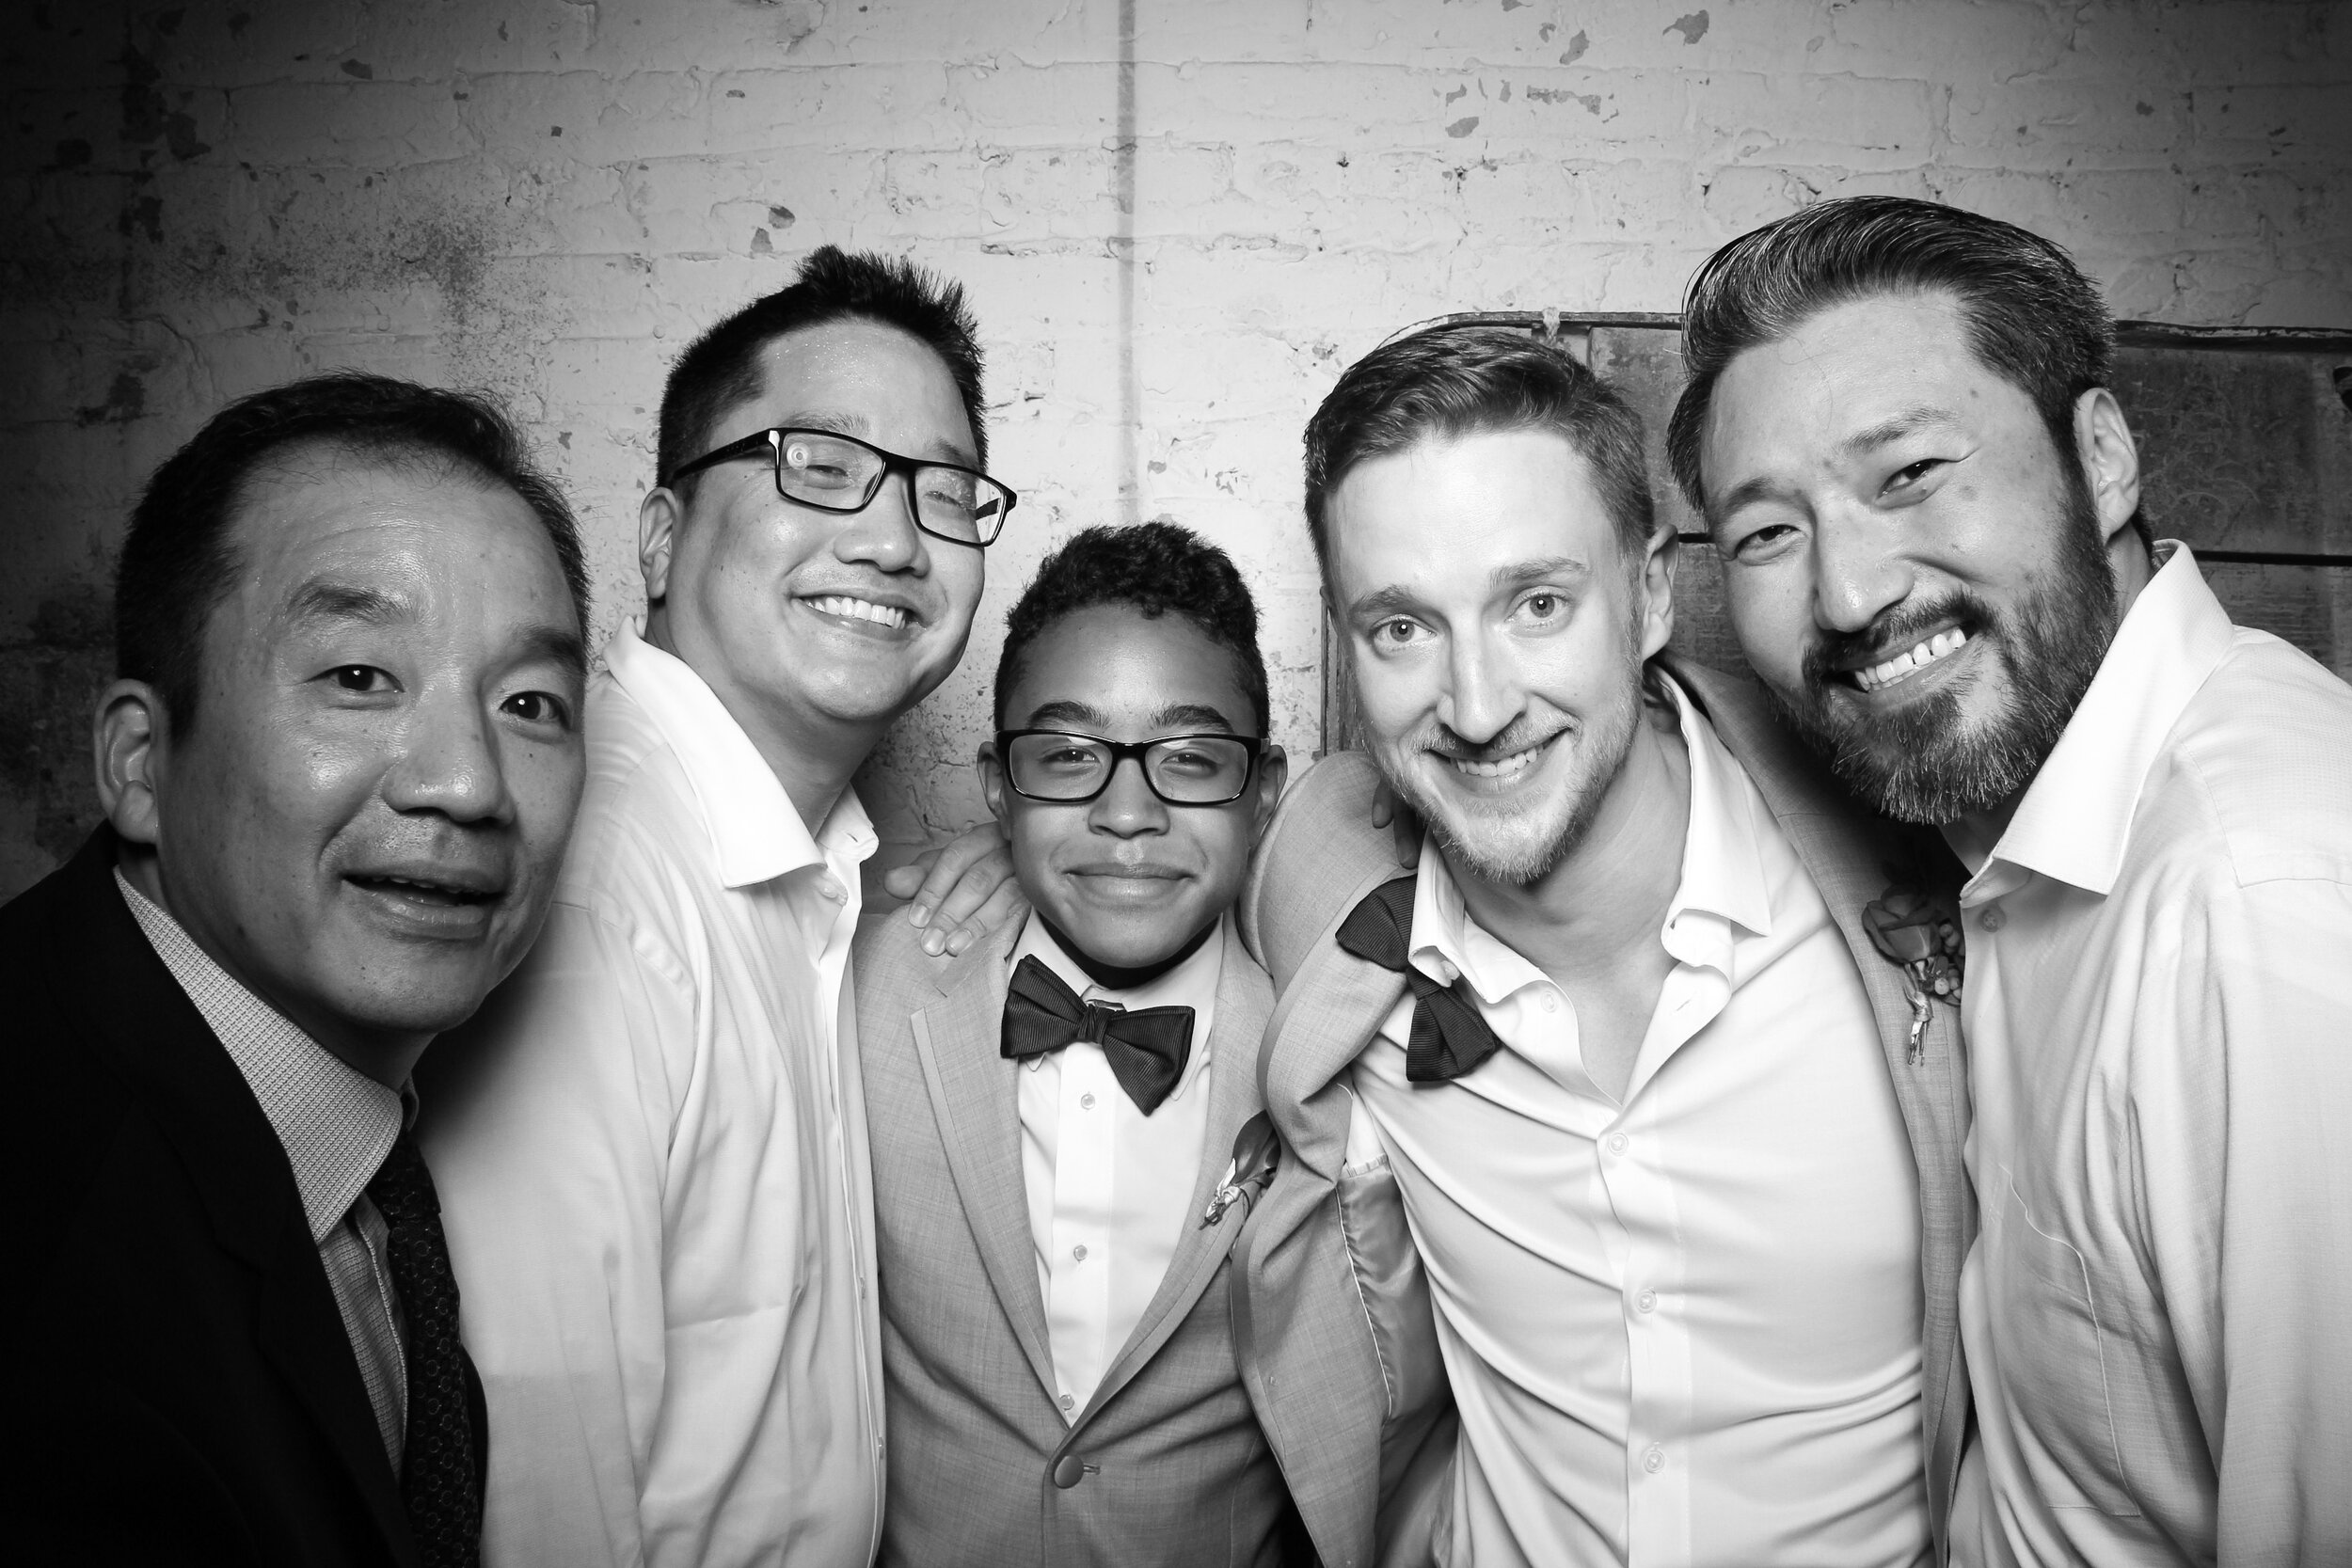 Chicago_Vintage_Wedding_Photobooth_Joinery_26.jpg